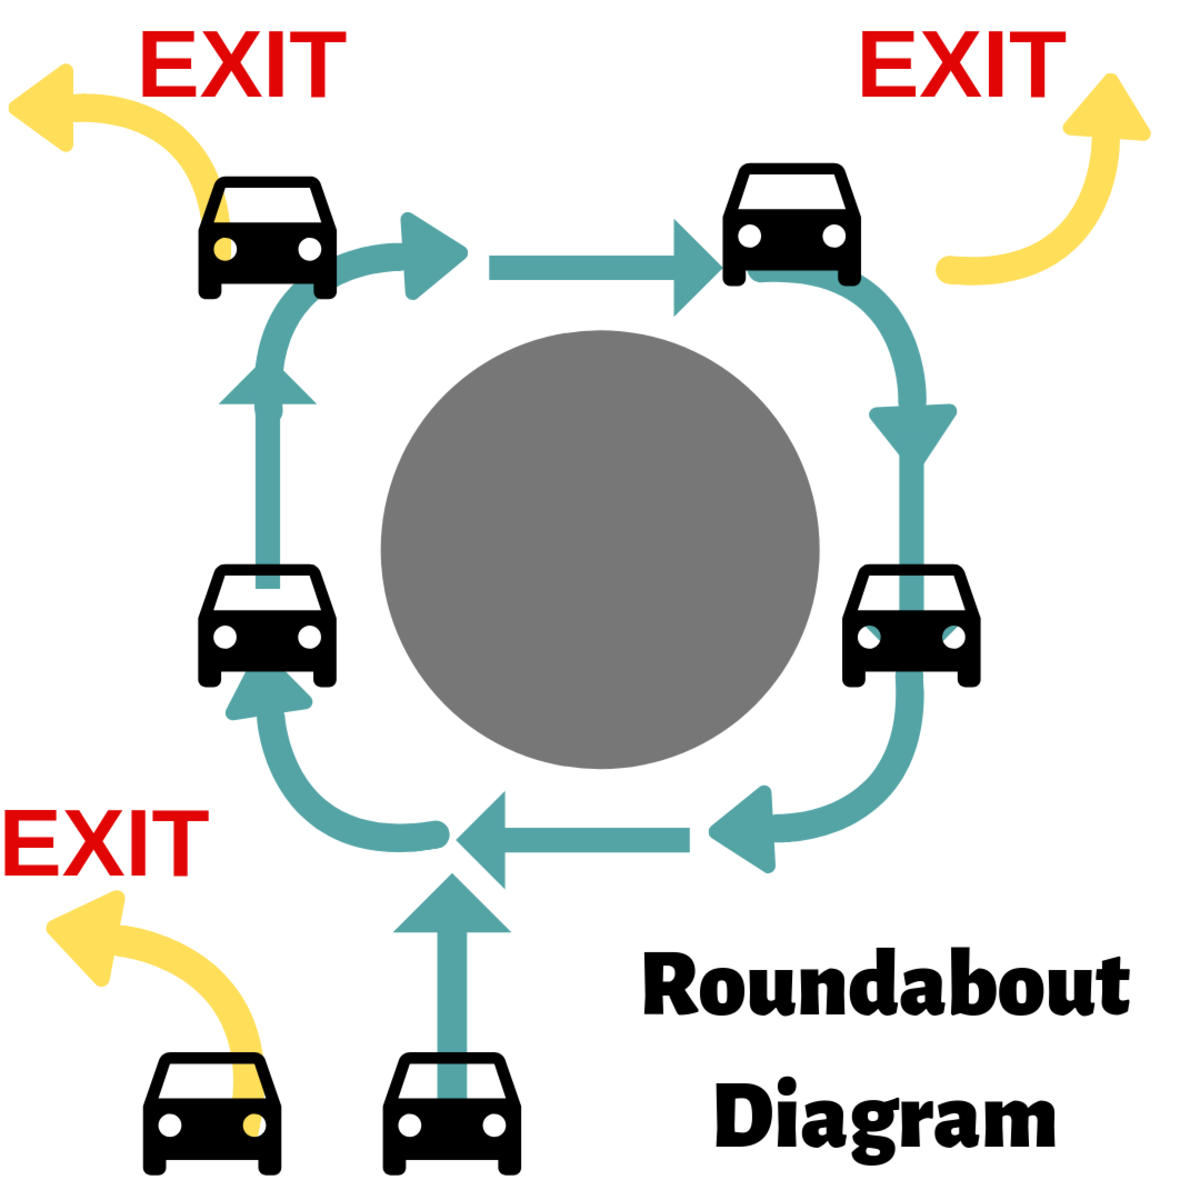 Roundabout diagram for double lanes. Use your signals.